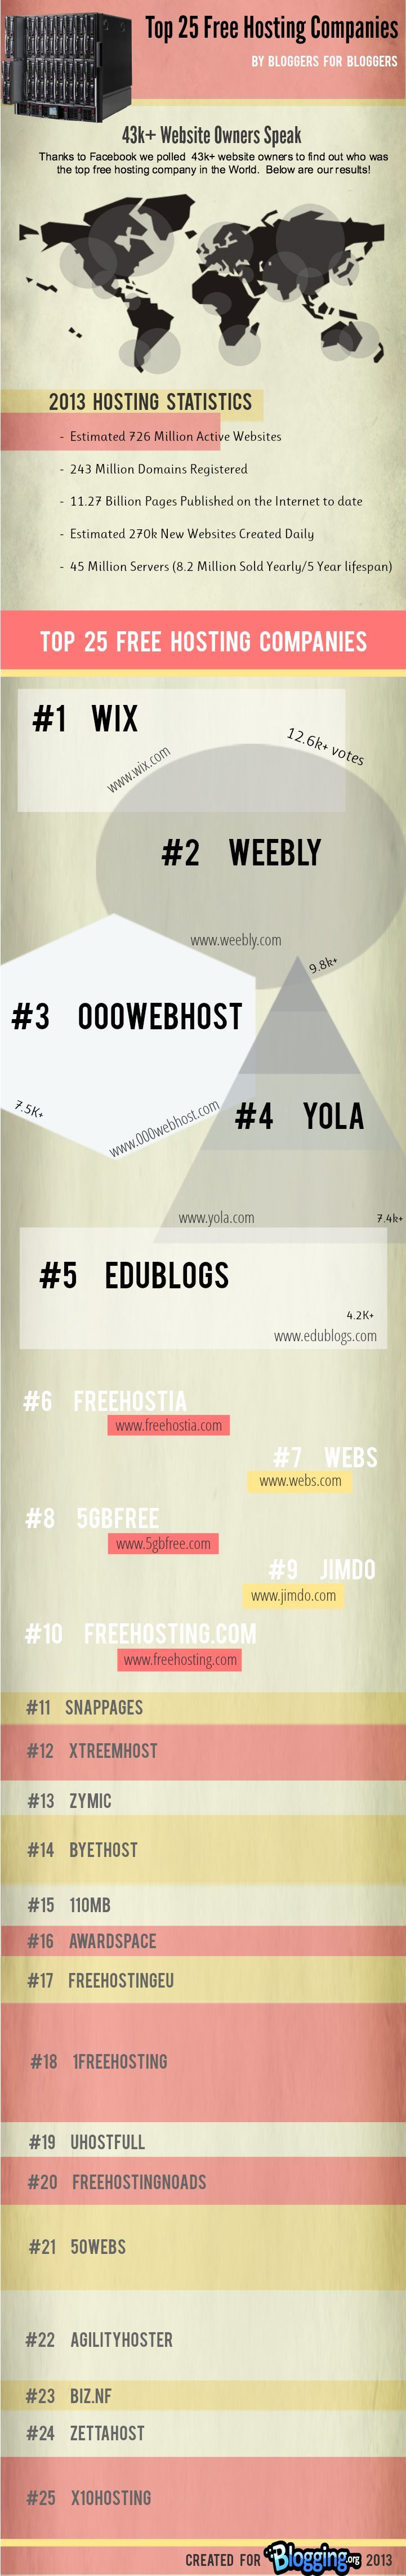 Looking for Free hosting providers\/website builders? Here are the top ones by usage.